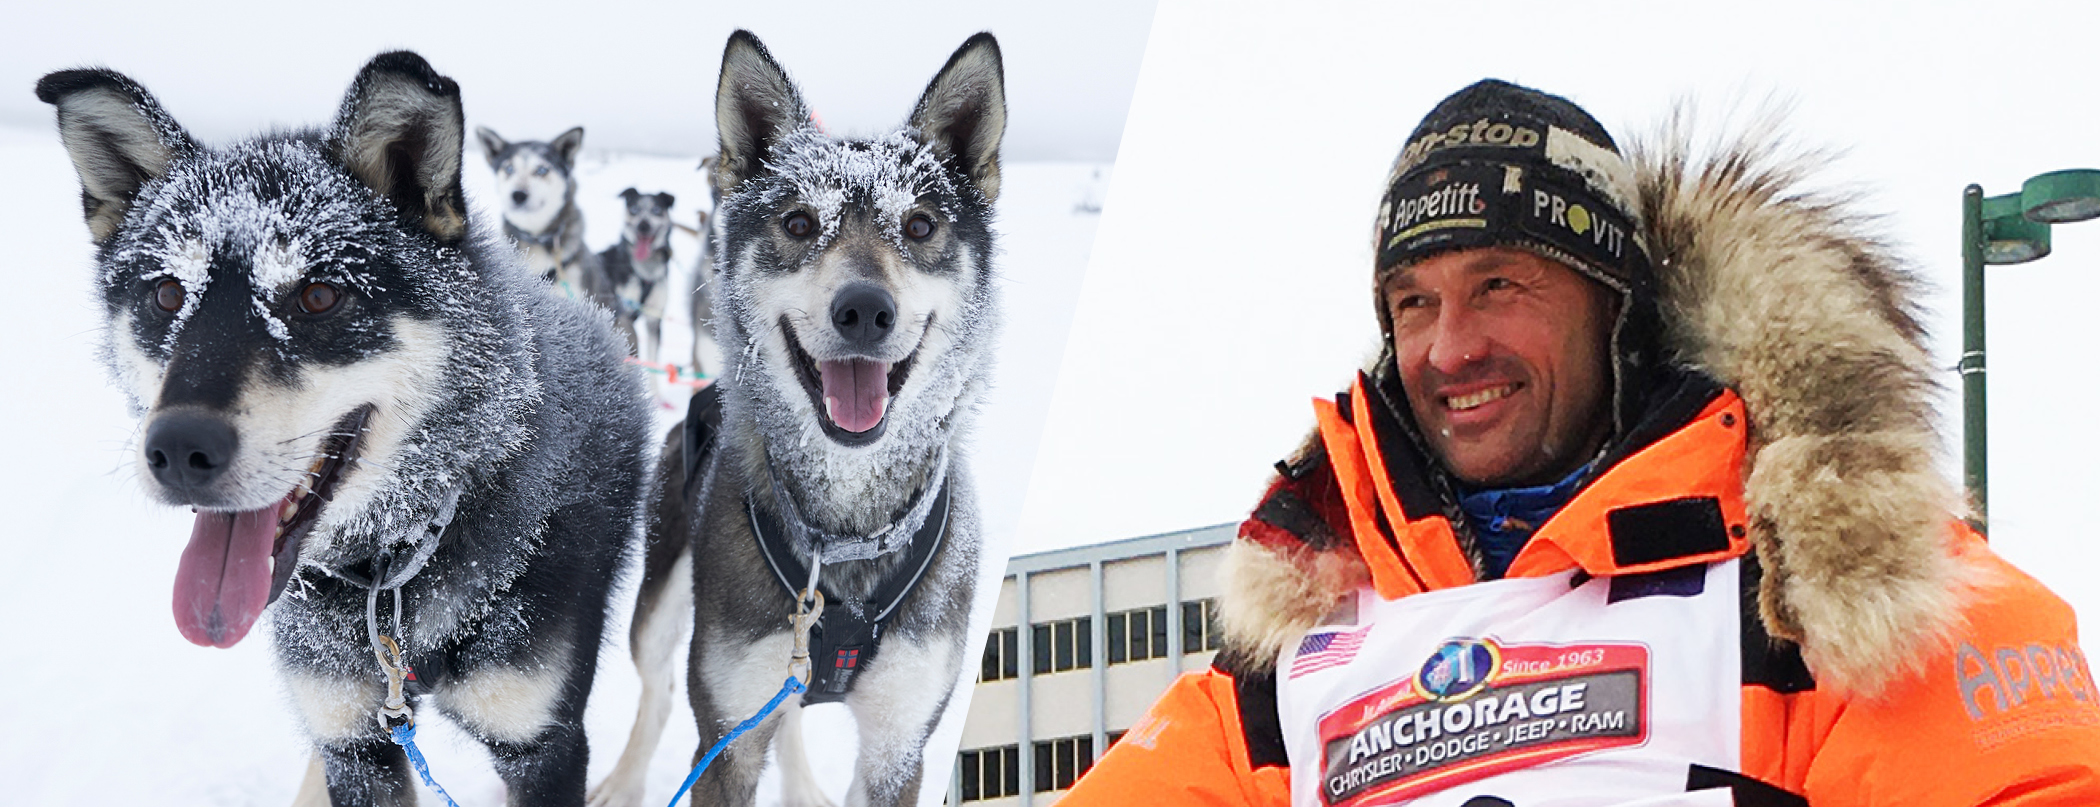 Thomas Wærner and Lead Dog Team QRILL Pet